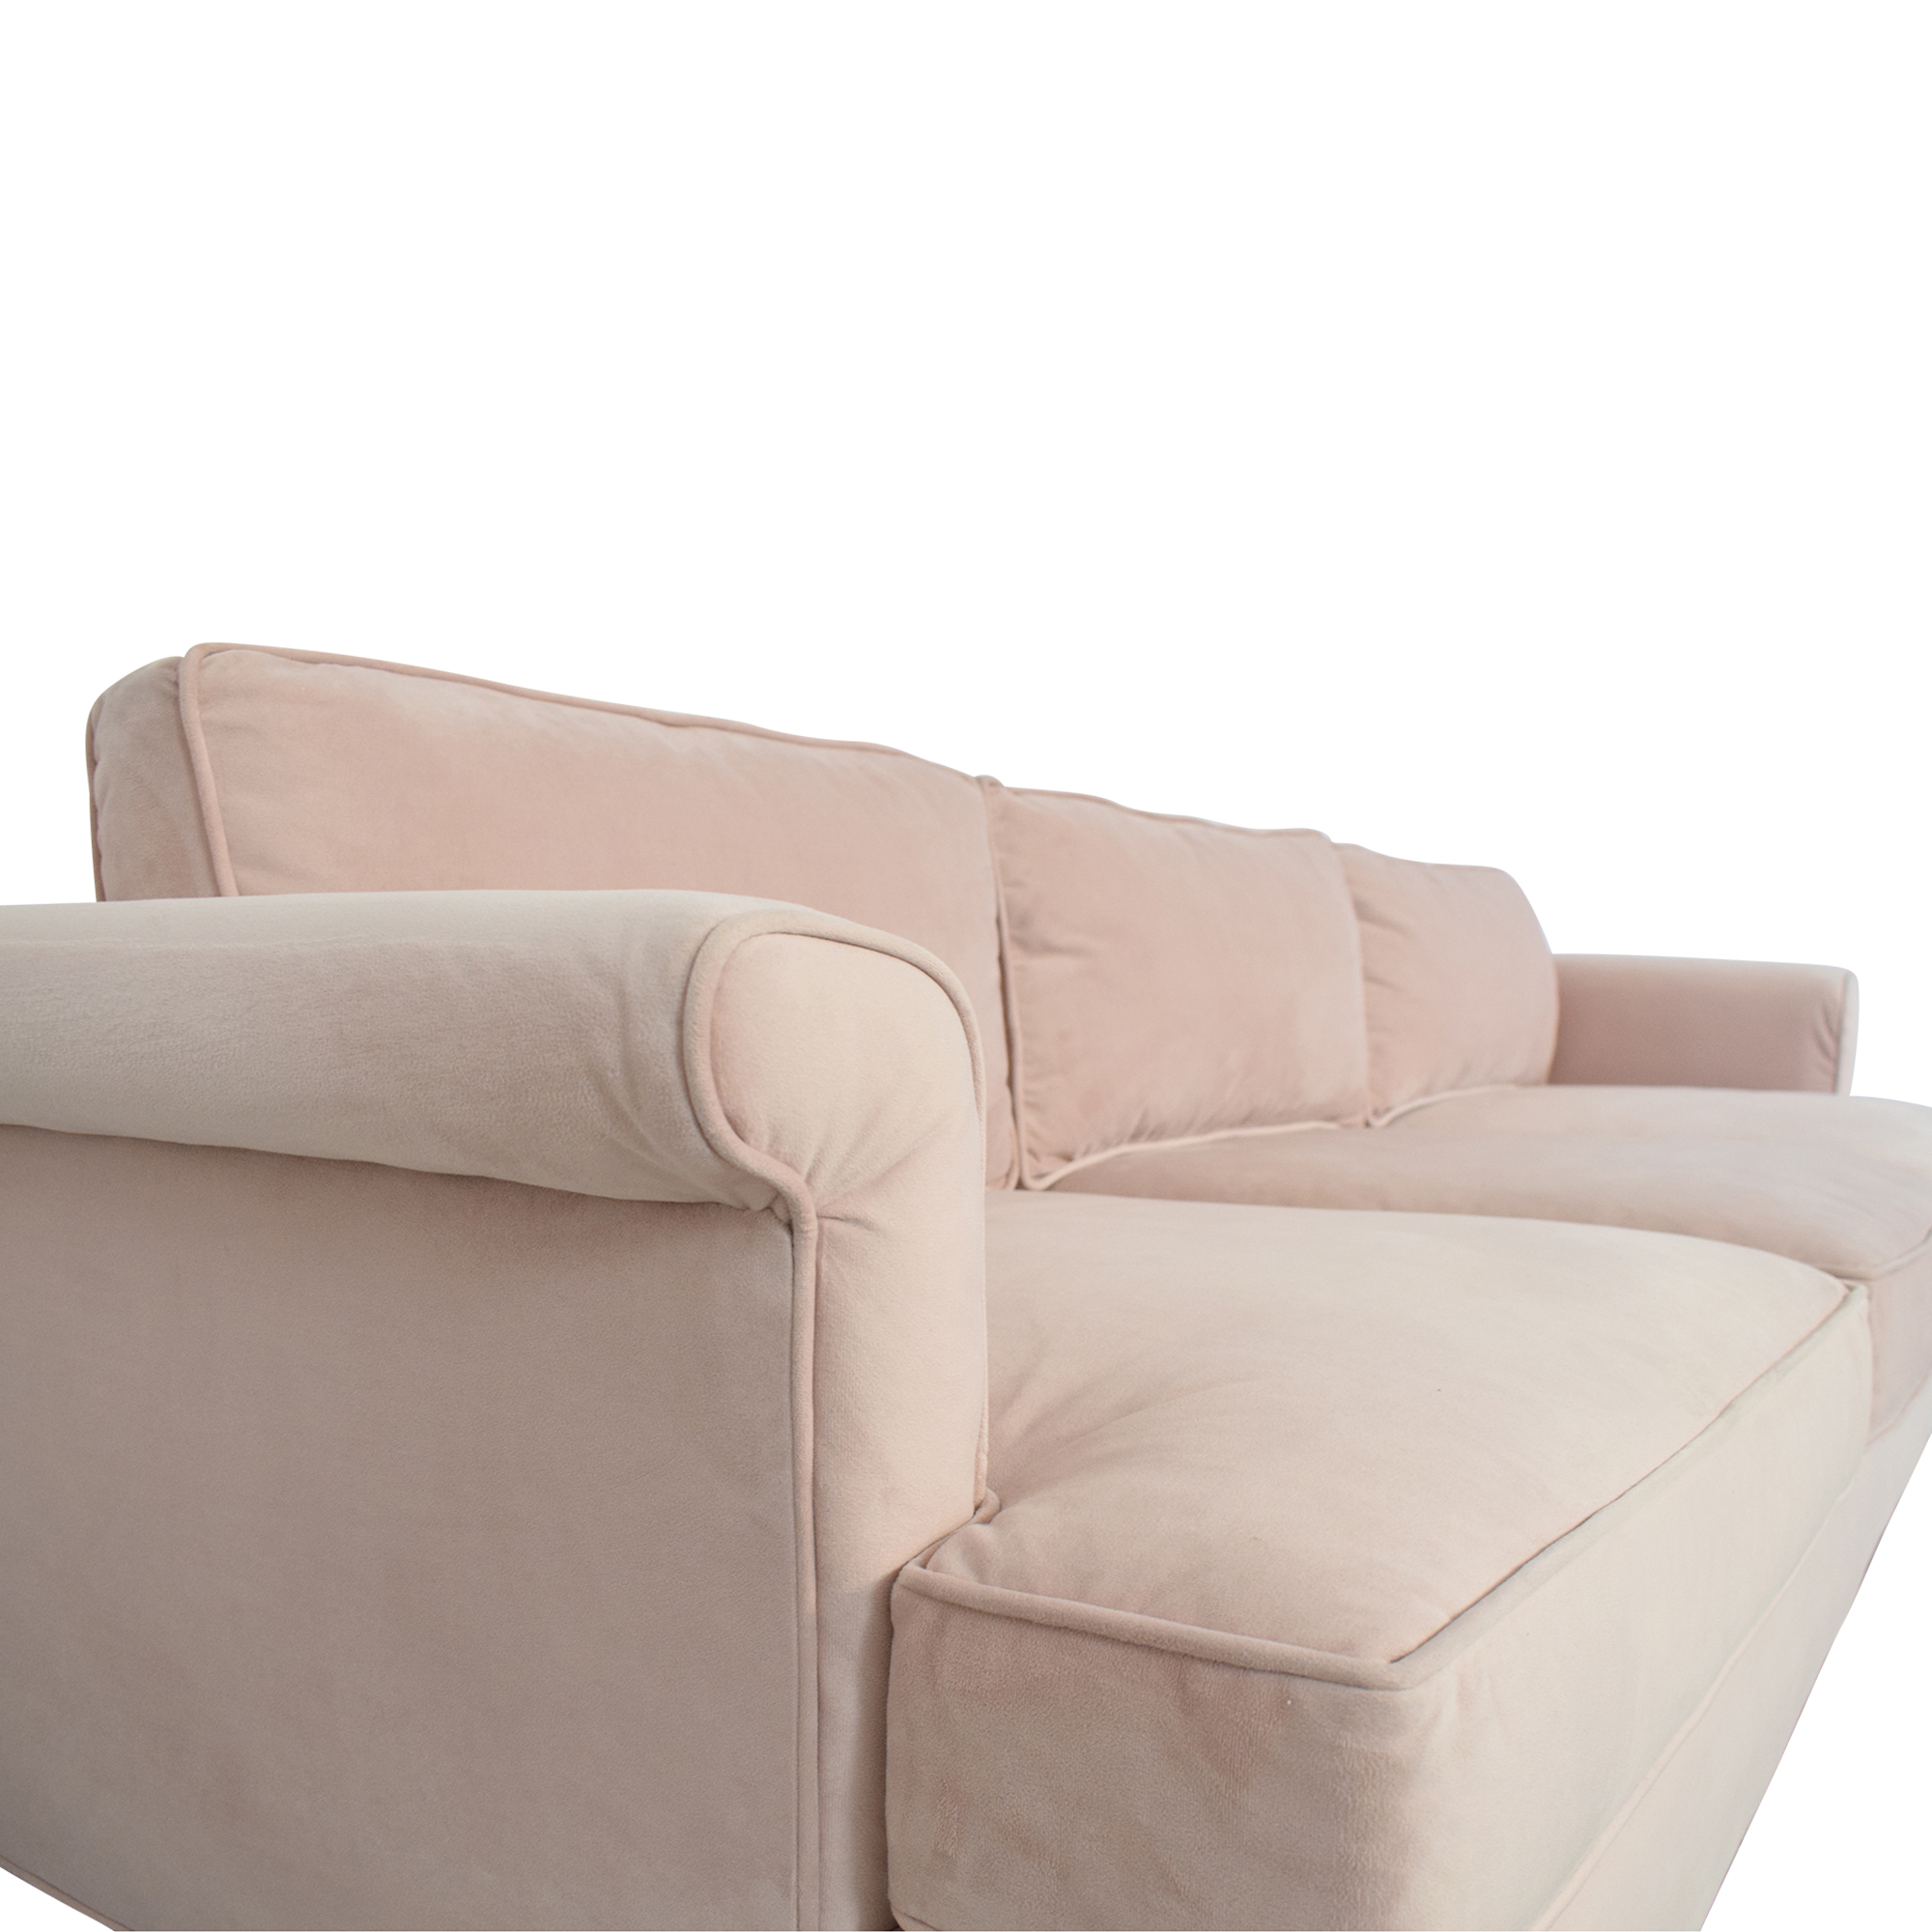 The Inside The Inside Blush Three Cushion Sofa pink